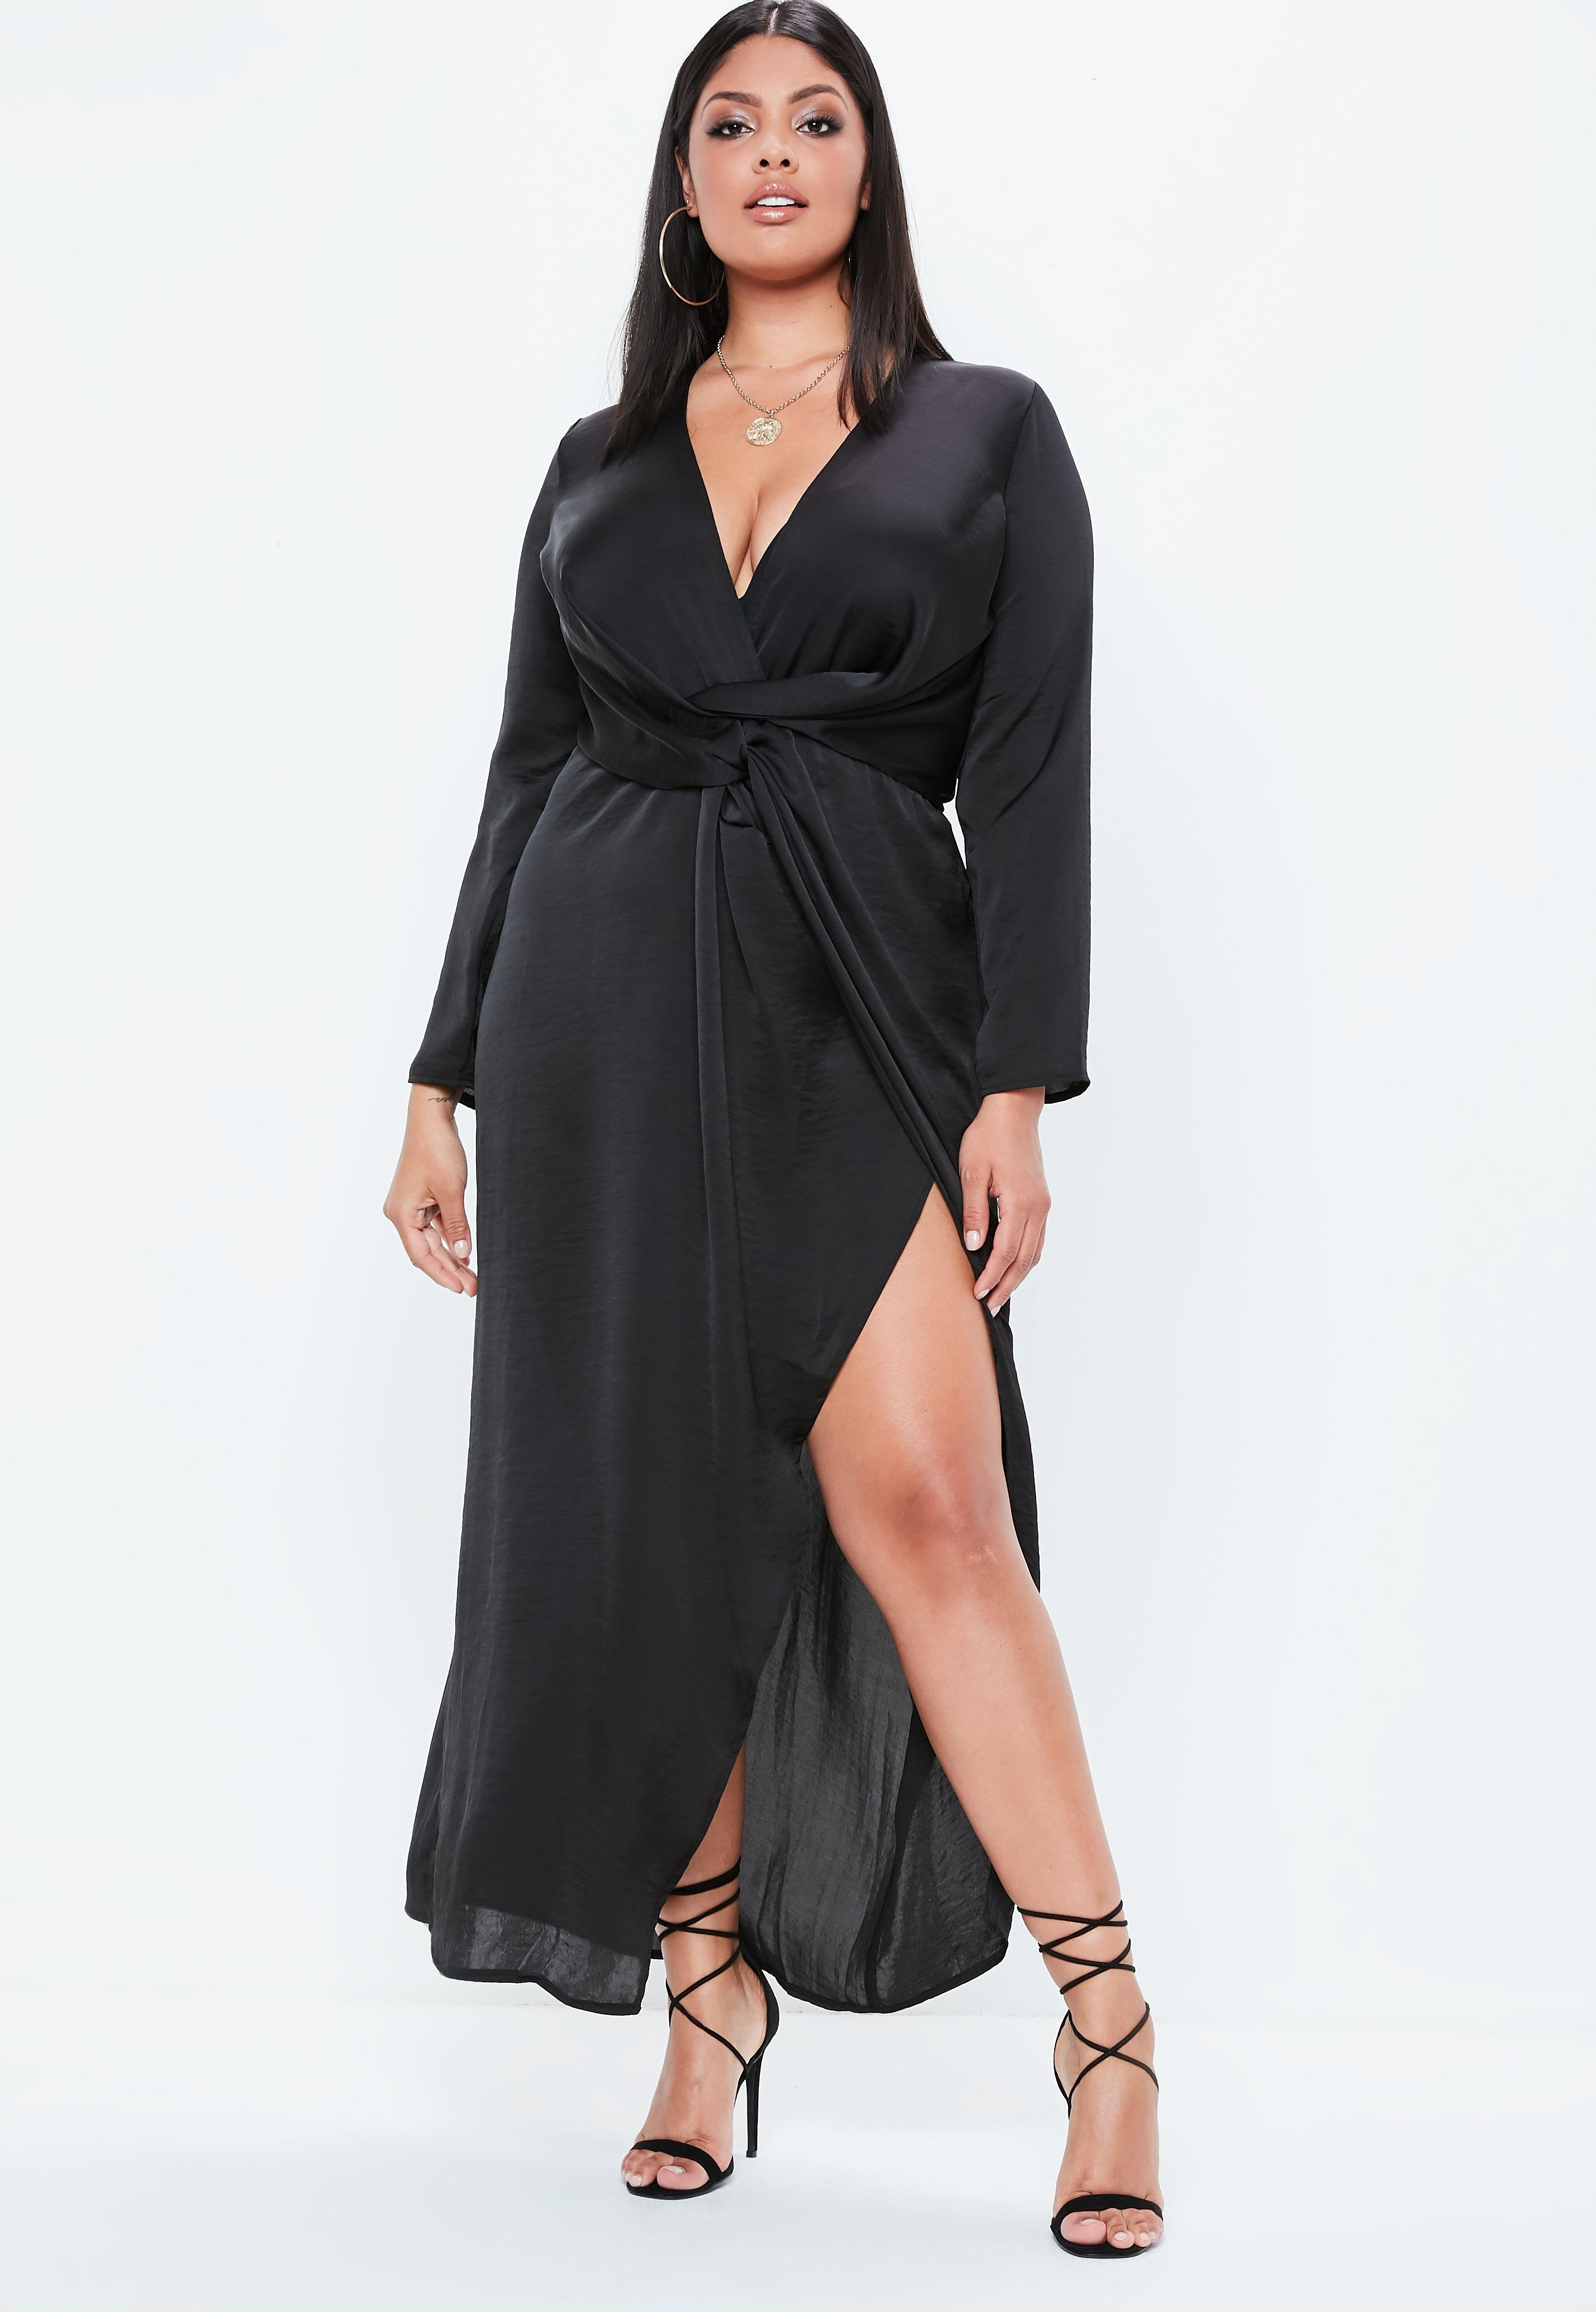 9d5efcb5a97d New Years Eve Dresses | NYE Outfits Online - Missguided